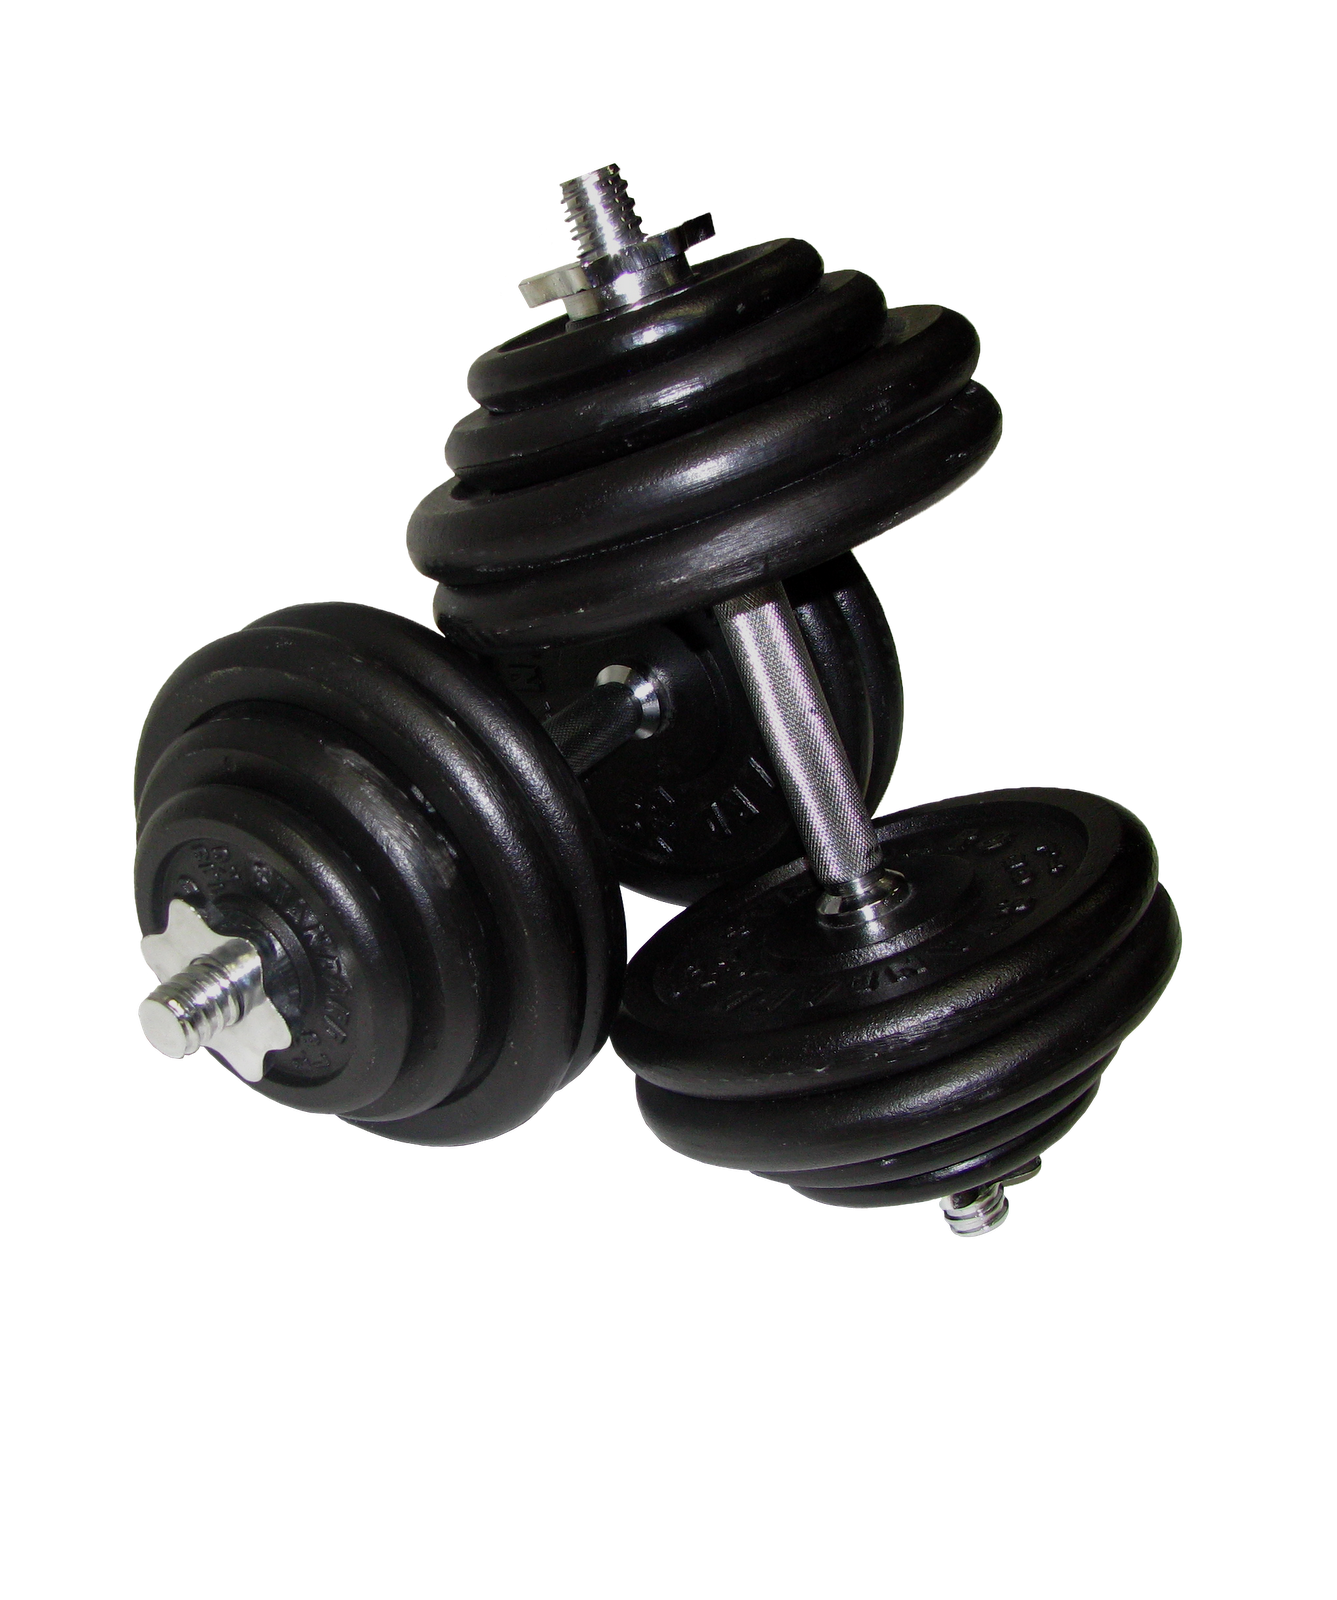 Dumbbell HD PNG - 93742